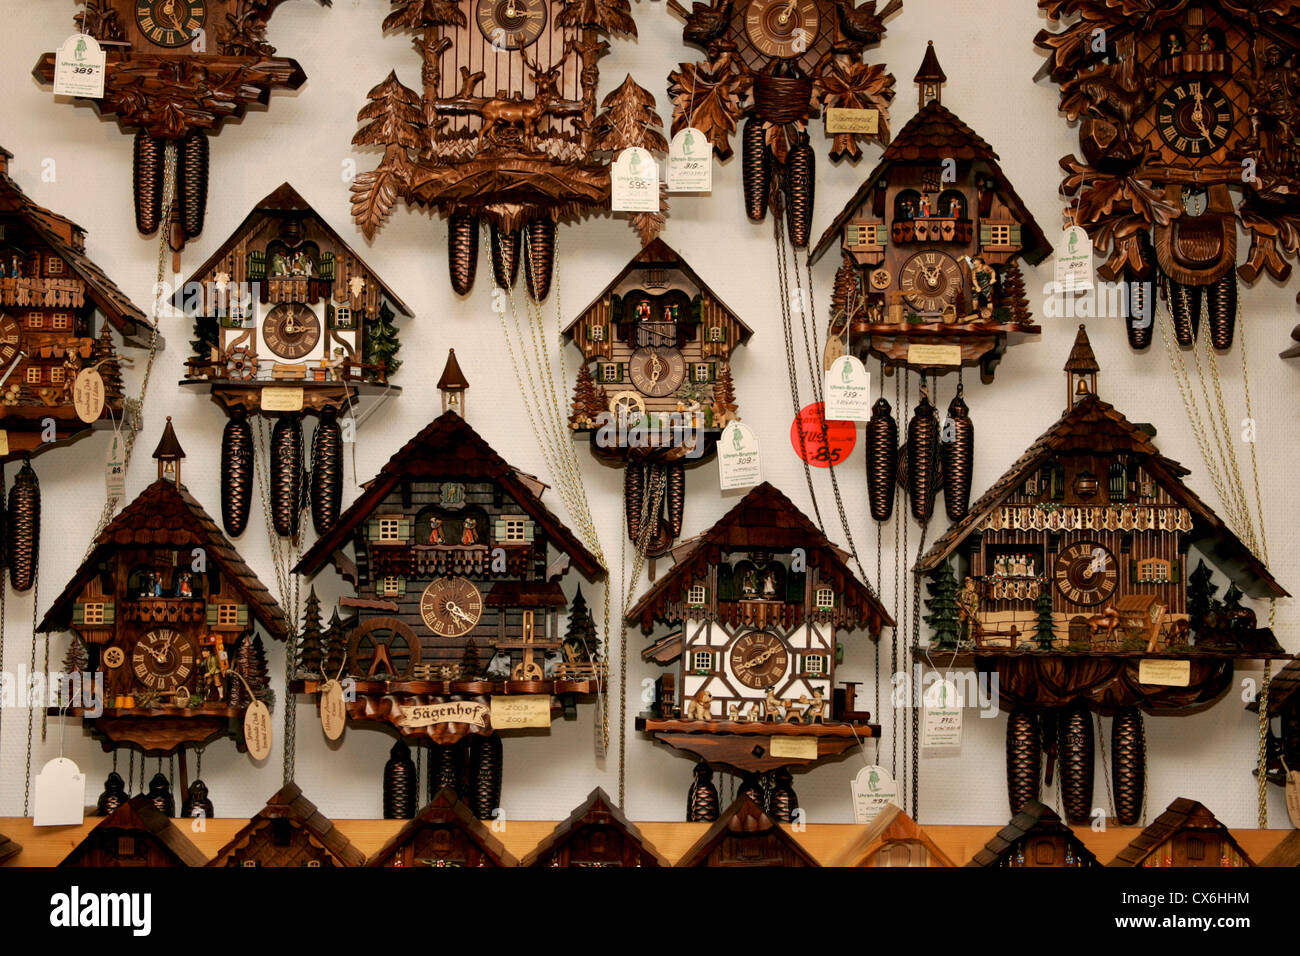 Several German Black Forest cuckoo clocks hanging on wall displayed, traditional craft from Bavaria village  Baden - Stock Image